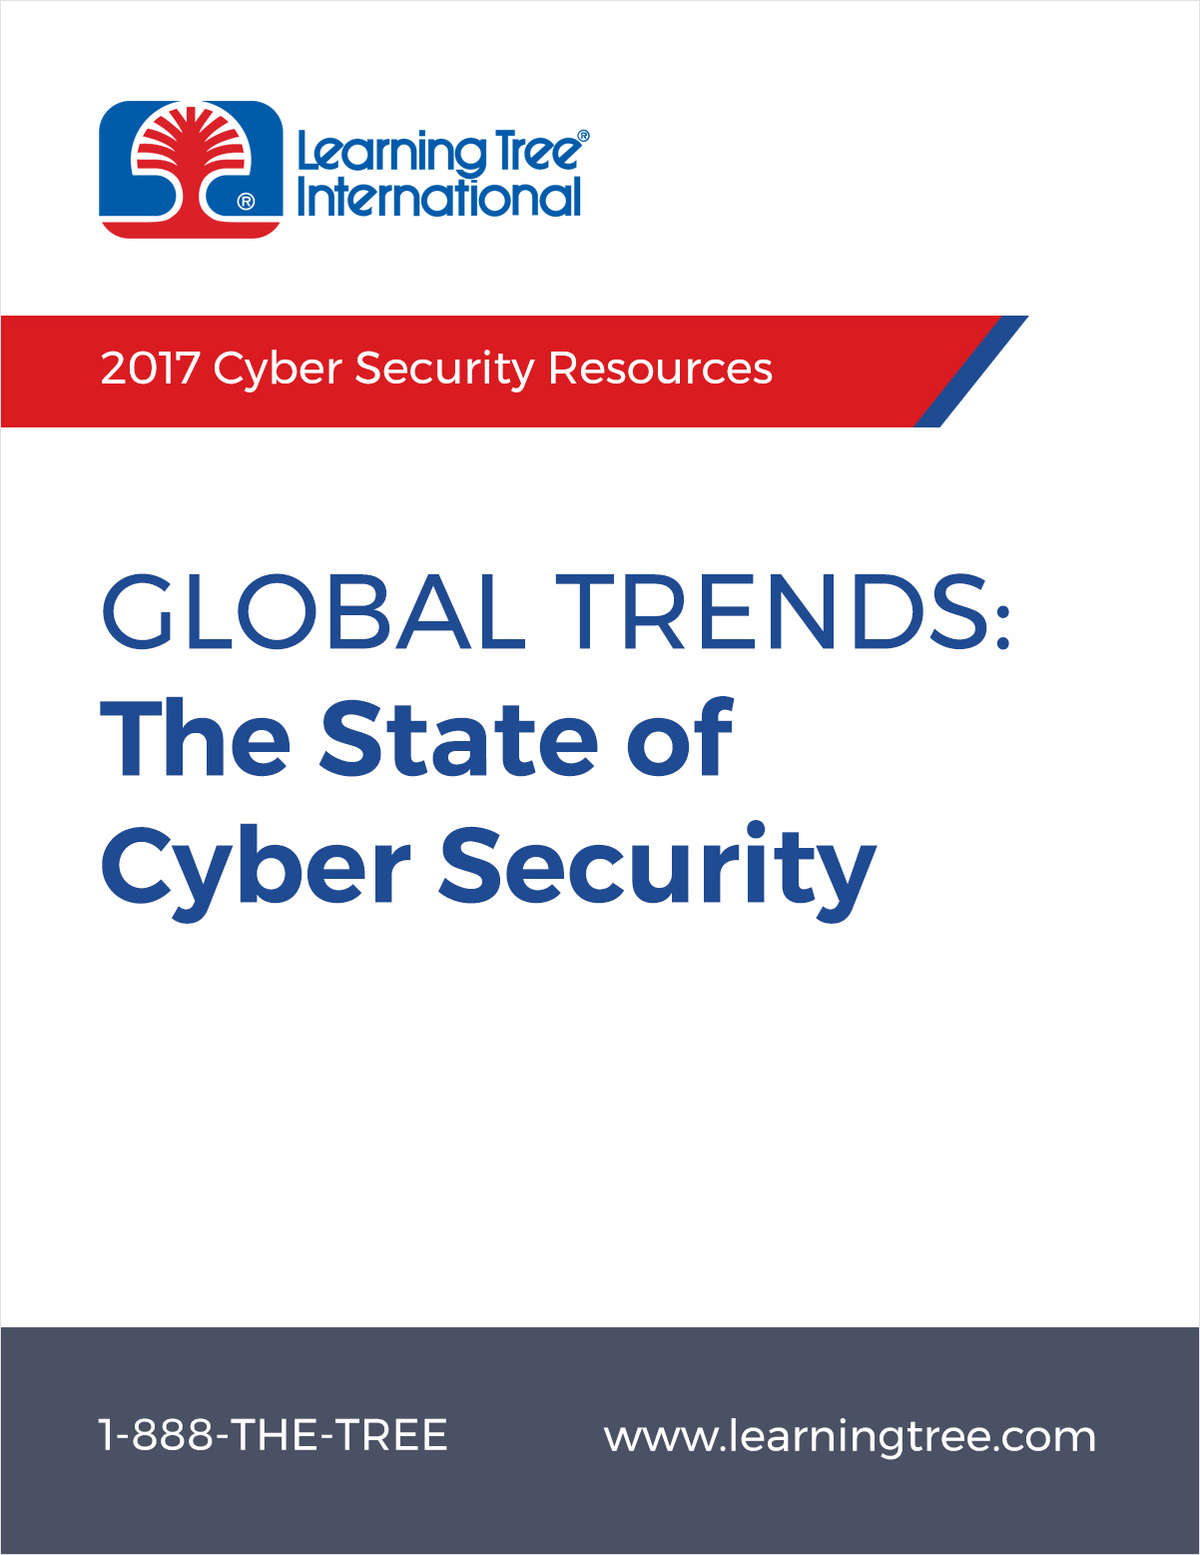 Global Trends: The State of Cyber Security